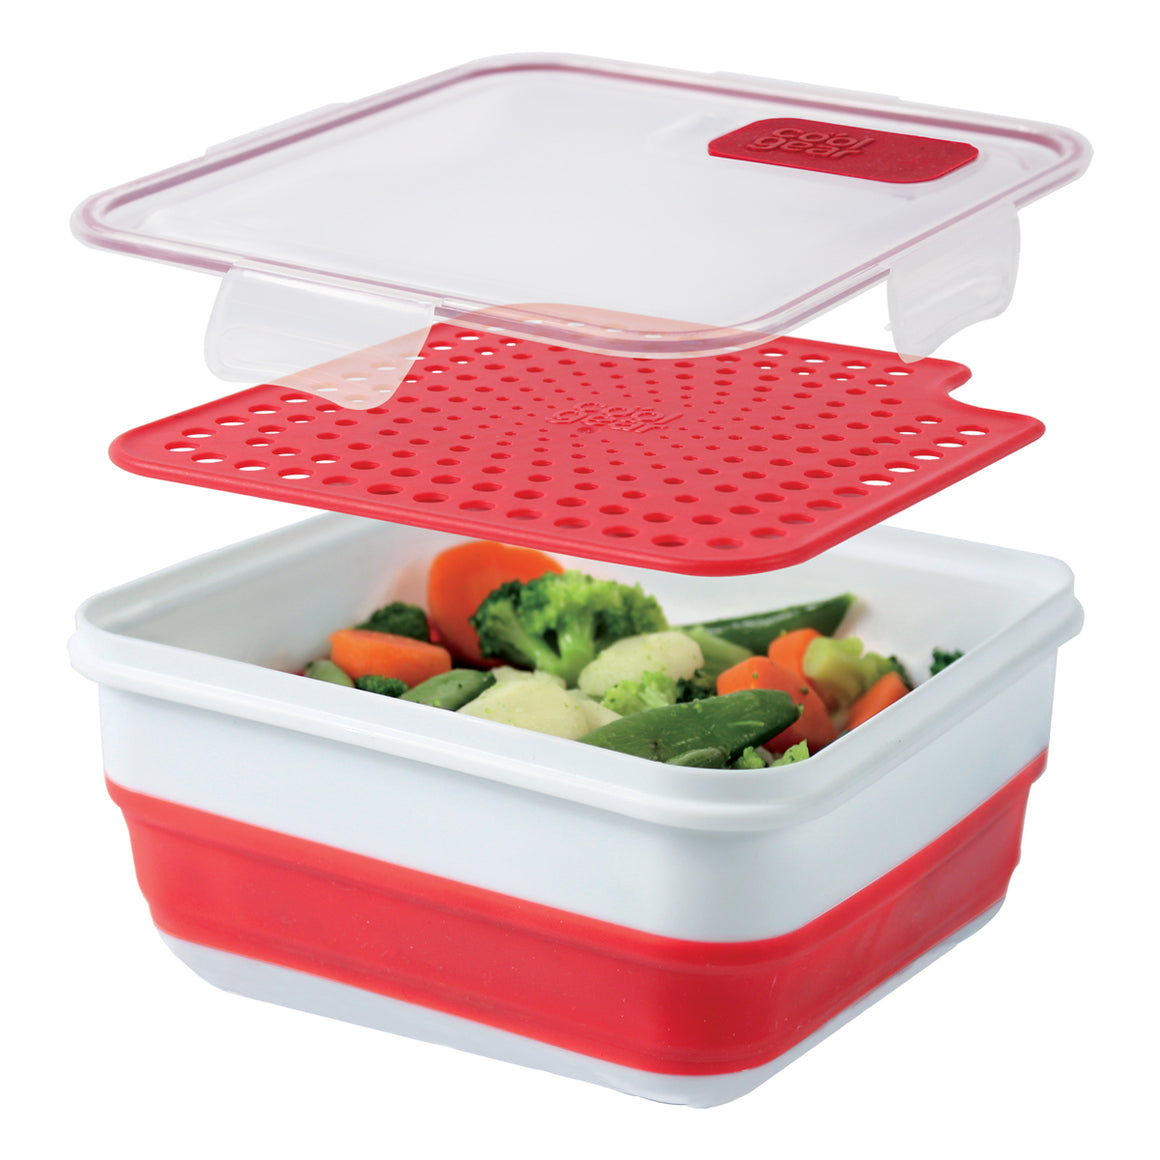 Red Expandable Steamer Food Container at Cool Gear Food Containers